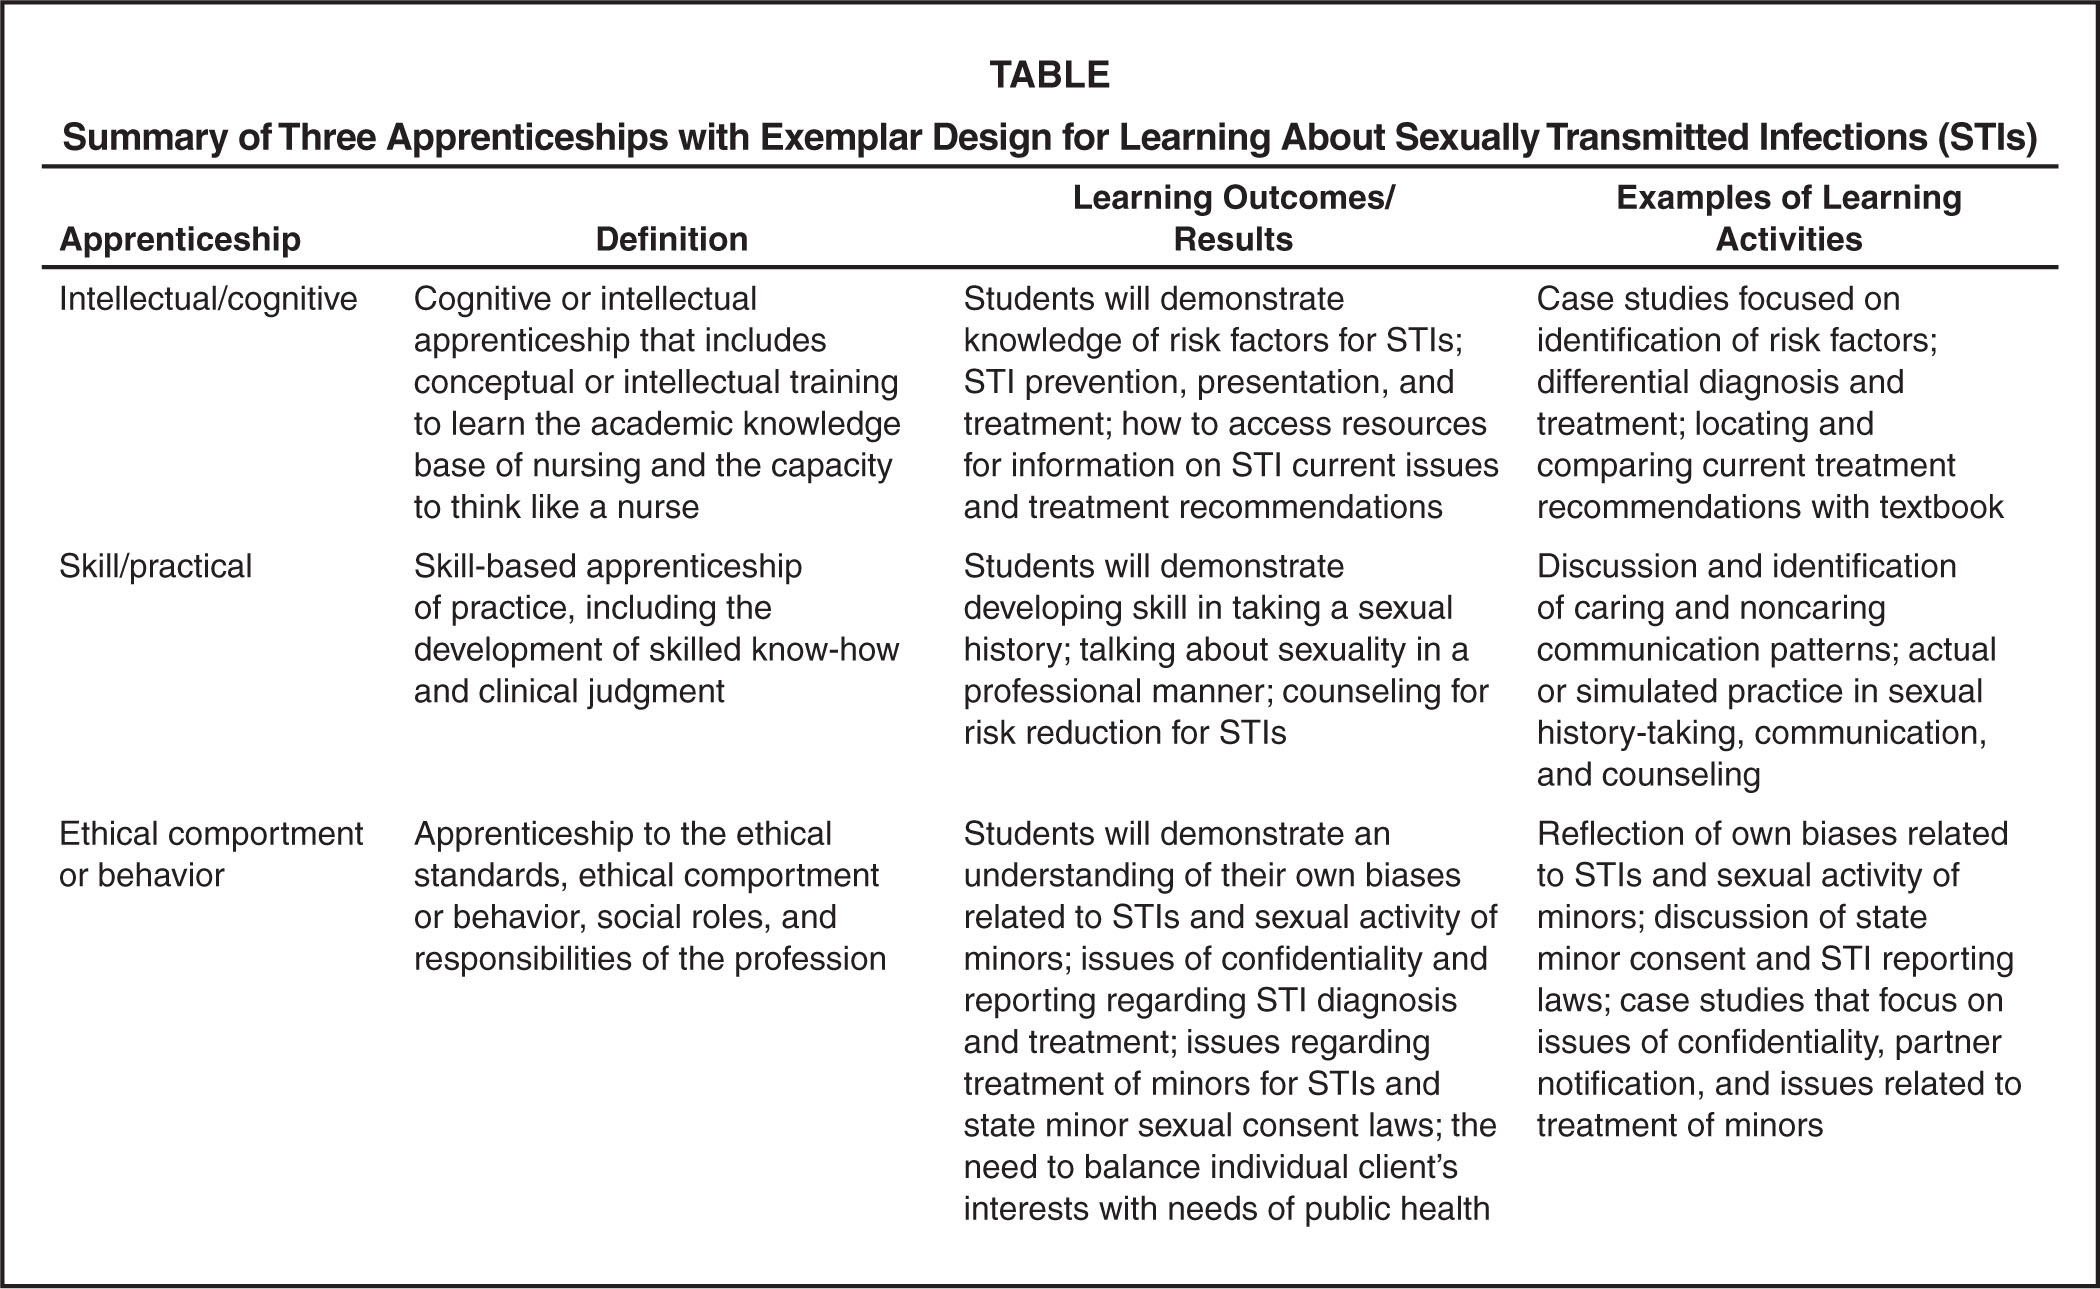 Summary of Three Apprenticeships with Exemplar Design for Learning About Sexually Transmitted Infections (STIs)